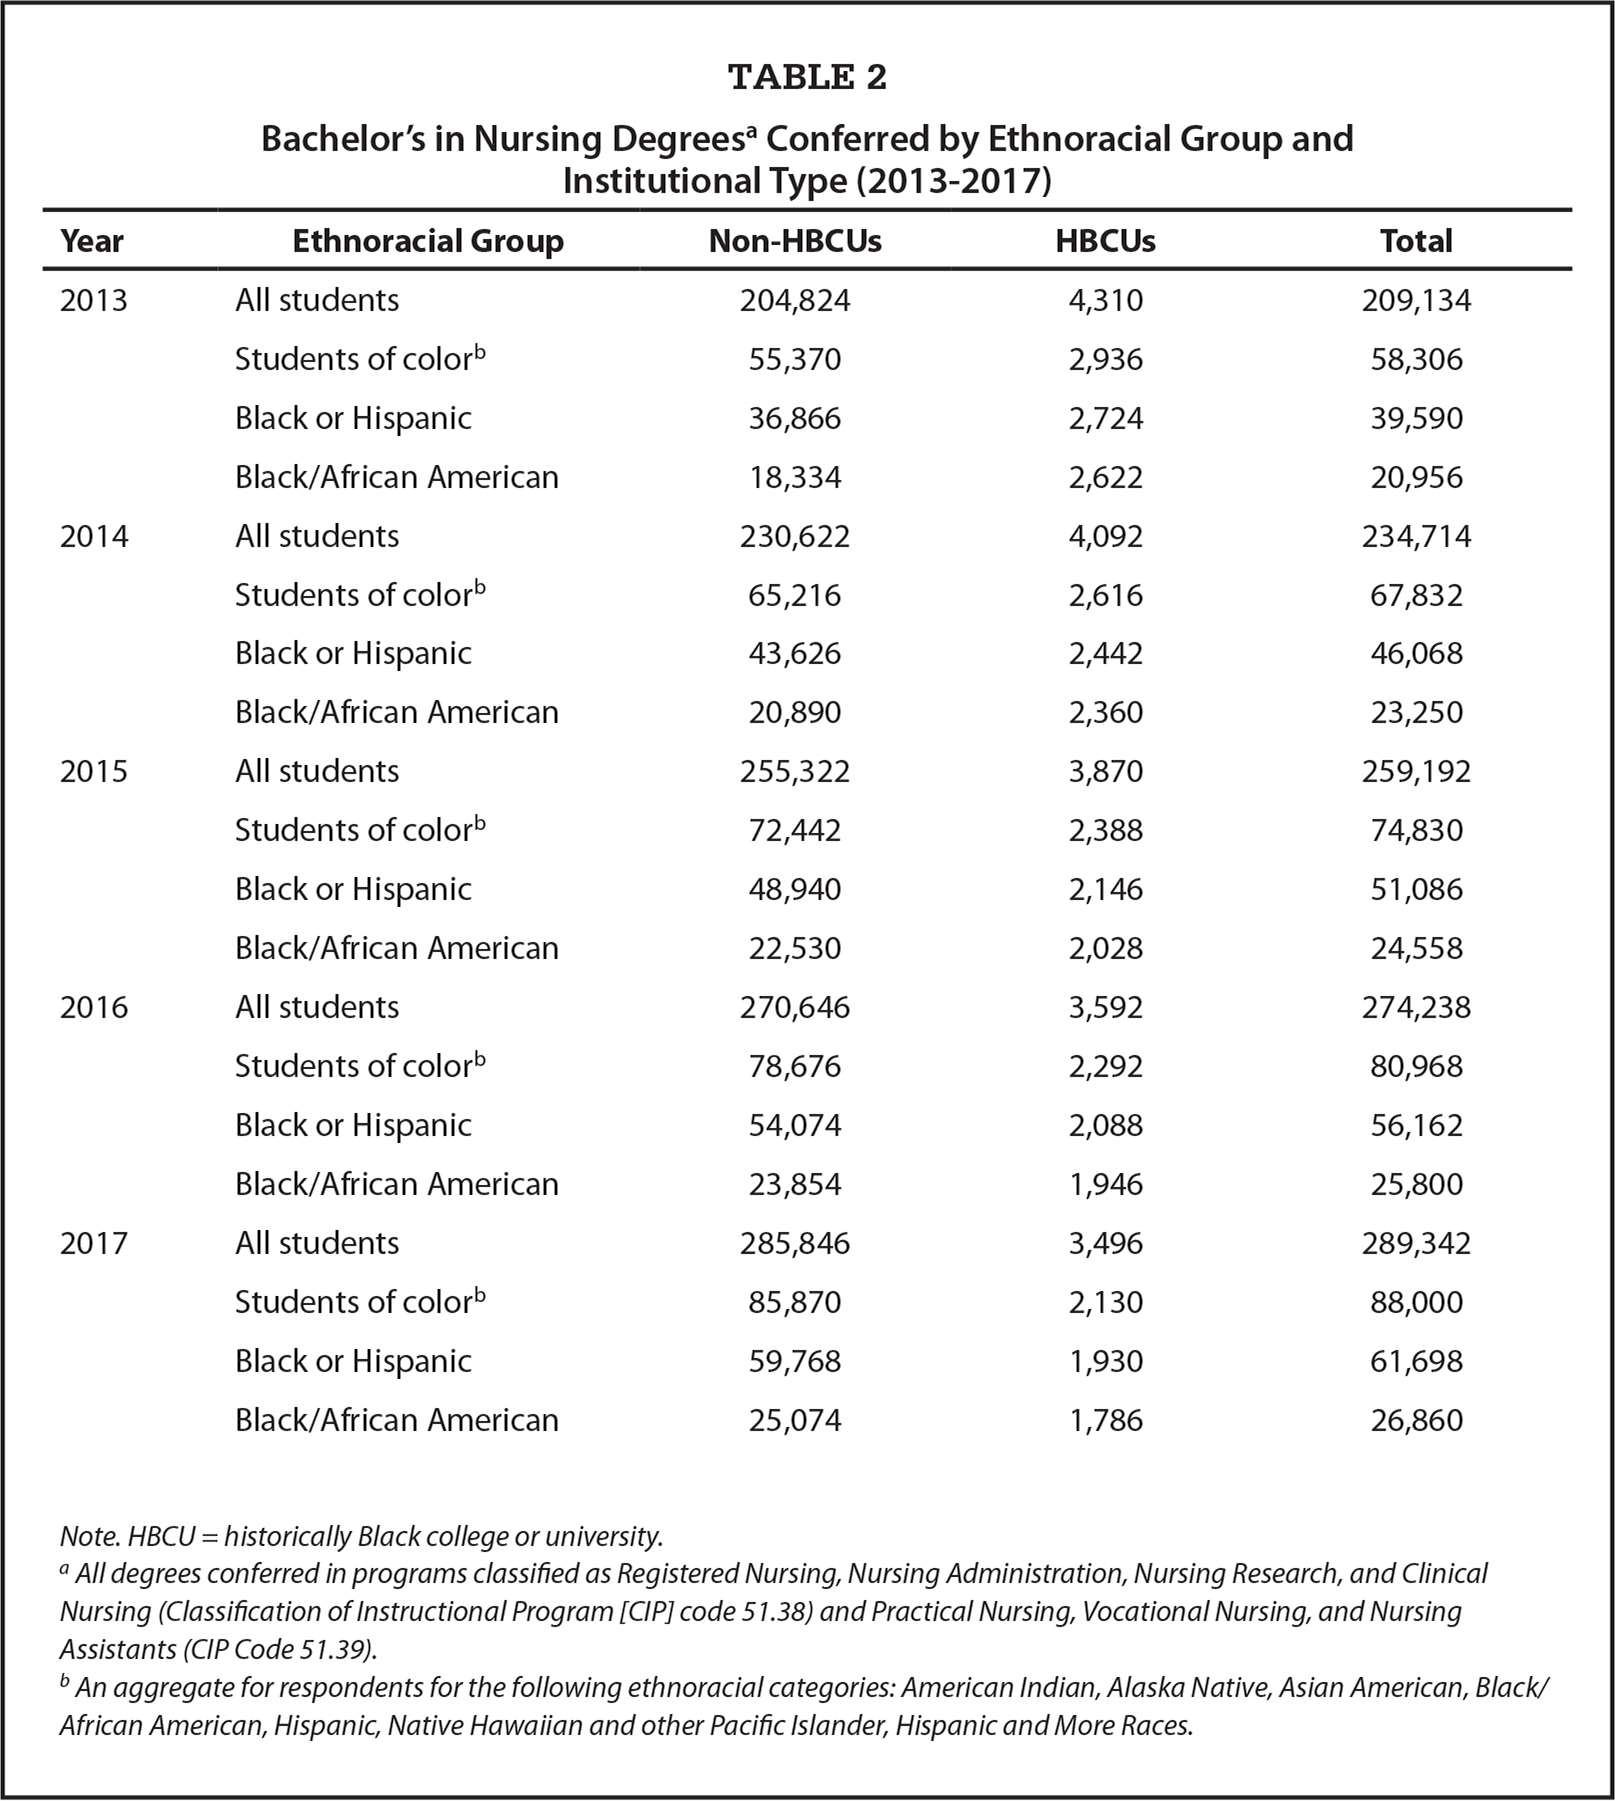 Bachelor's in Nursing Degreesa Conferred by Ethnoracial Group and Institutional Type (2013–2017)